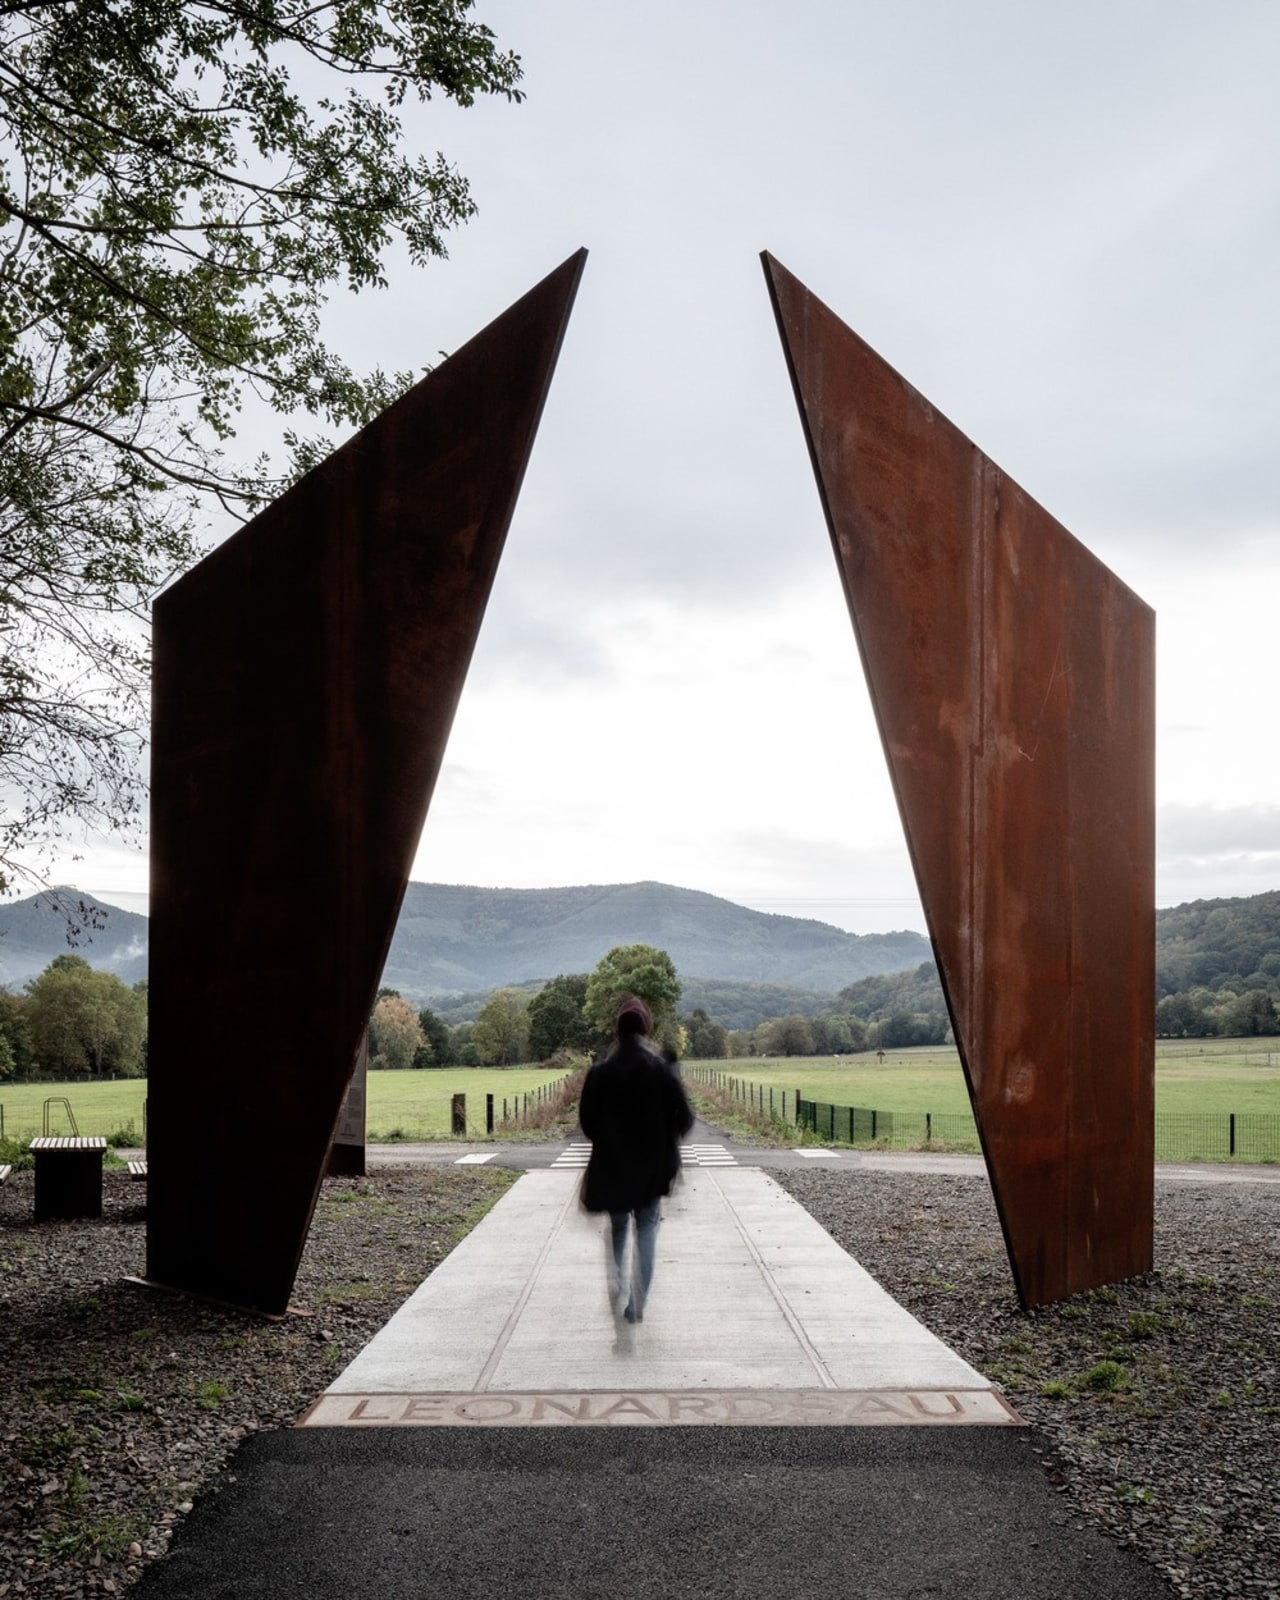 Corten steel 'gates' signal the end of a white, black